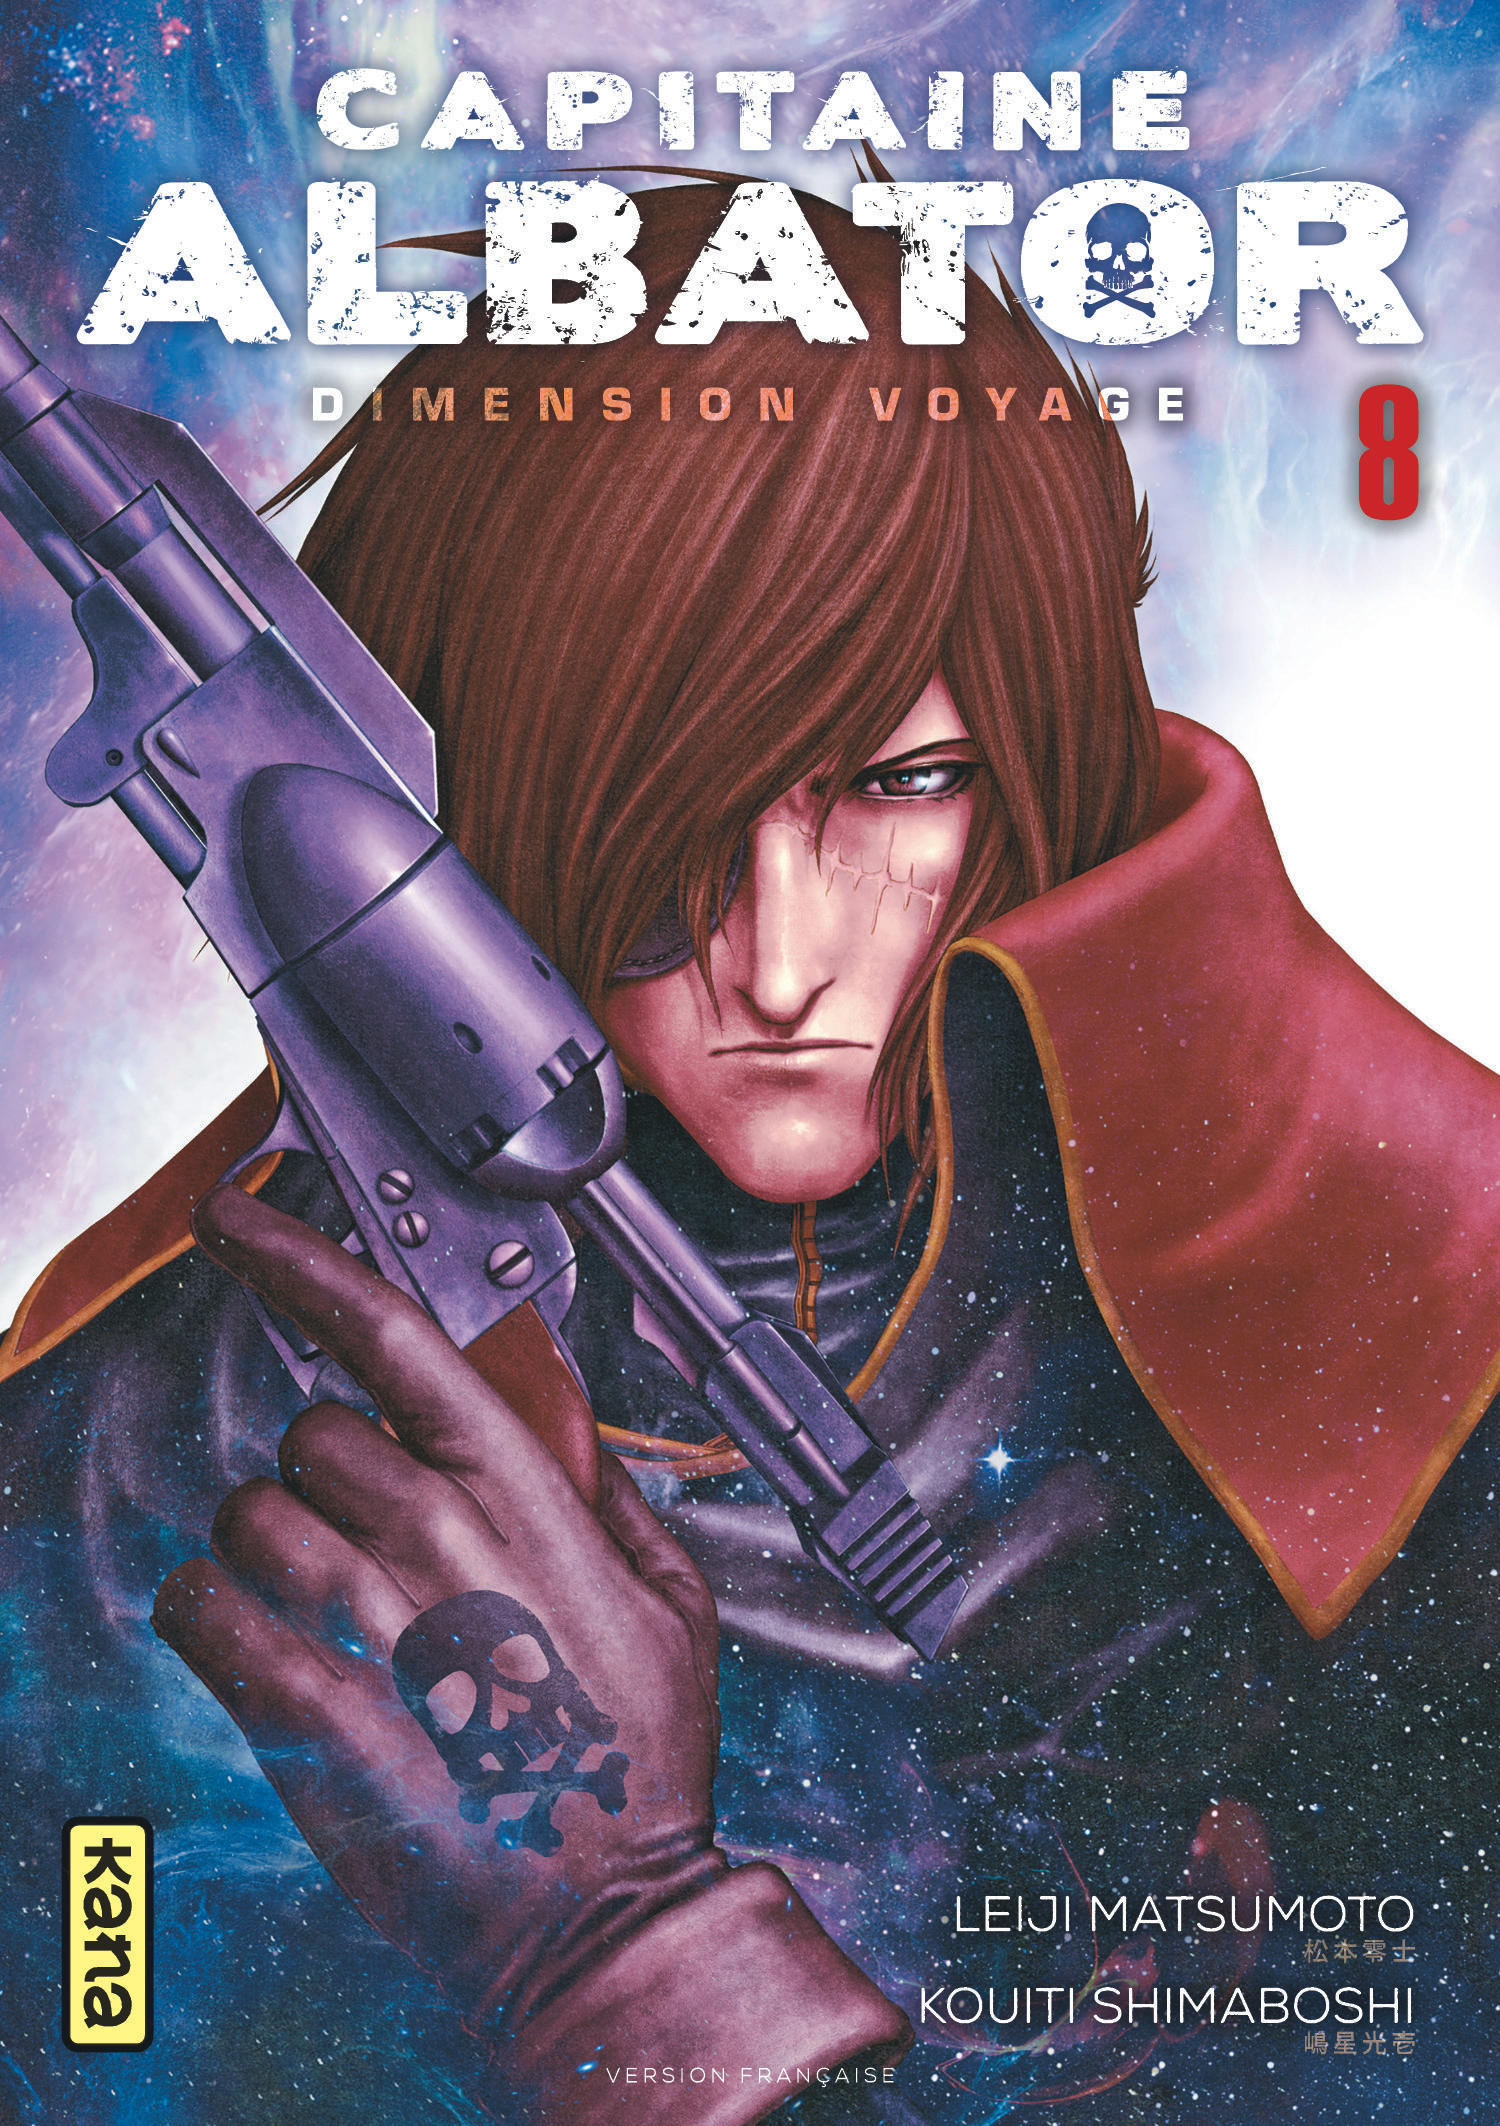 CAPITAINE ALBATOR DIMENSION VOYAGE, TOME 8